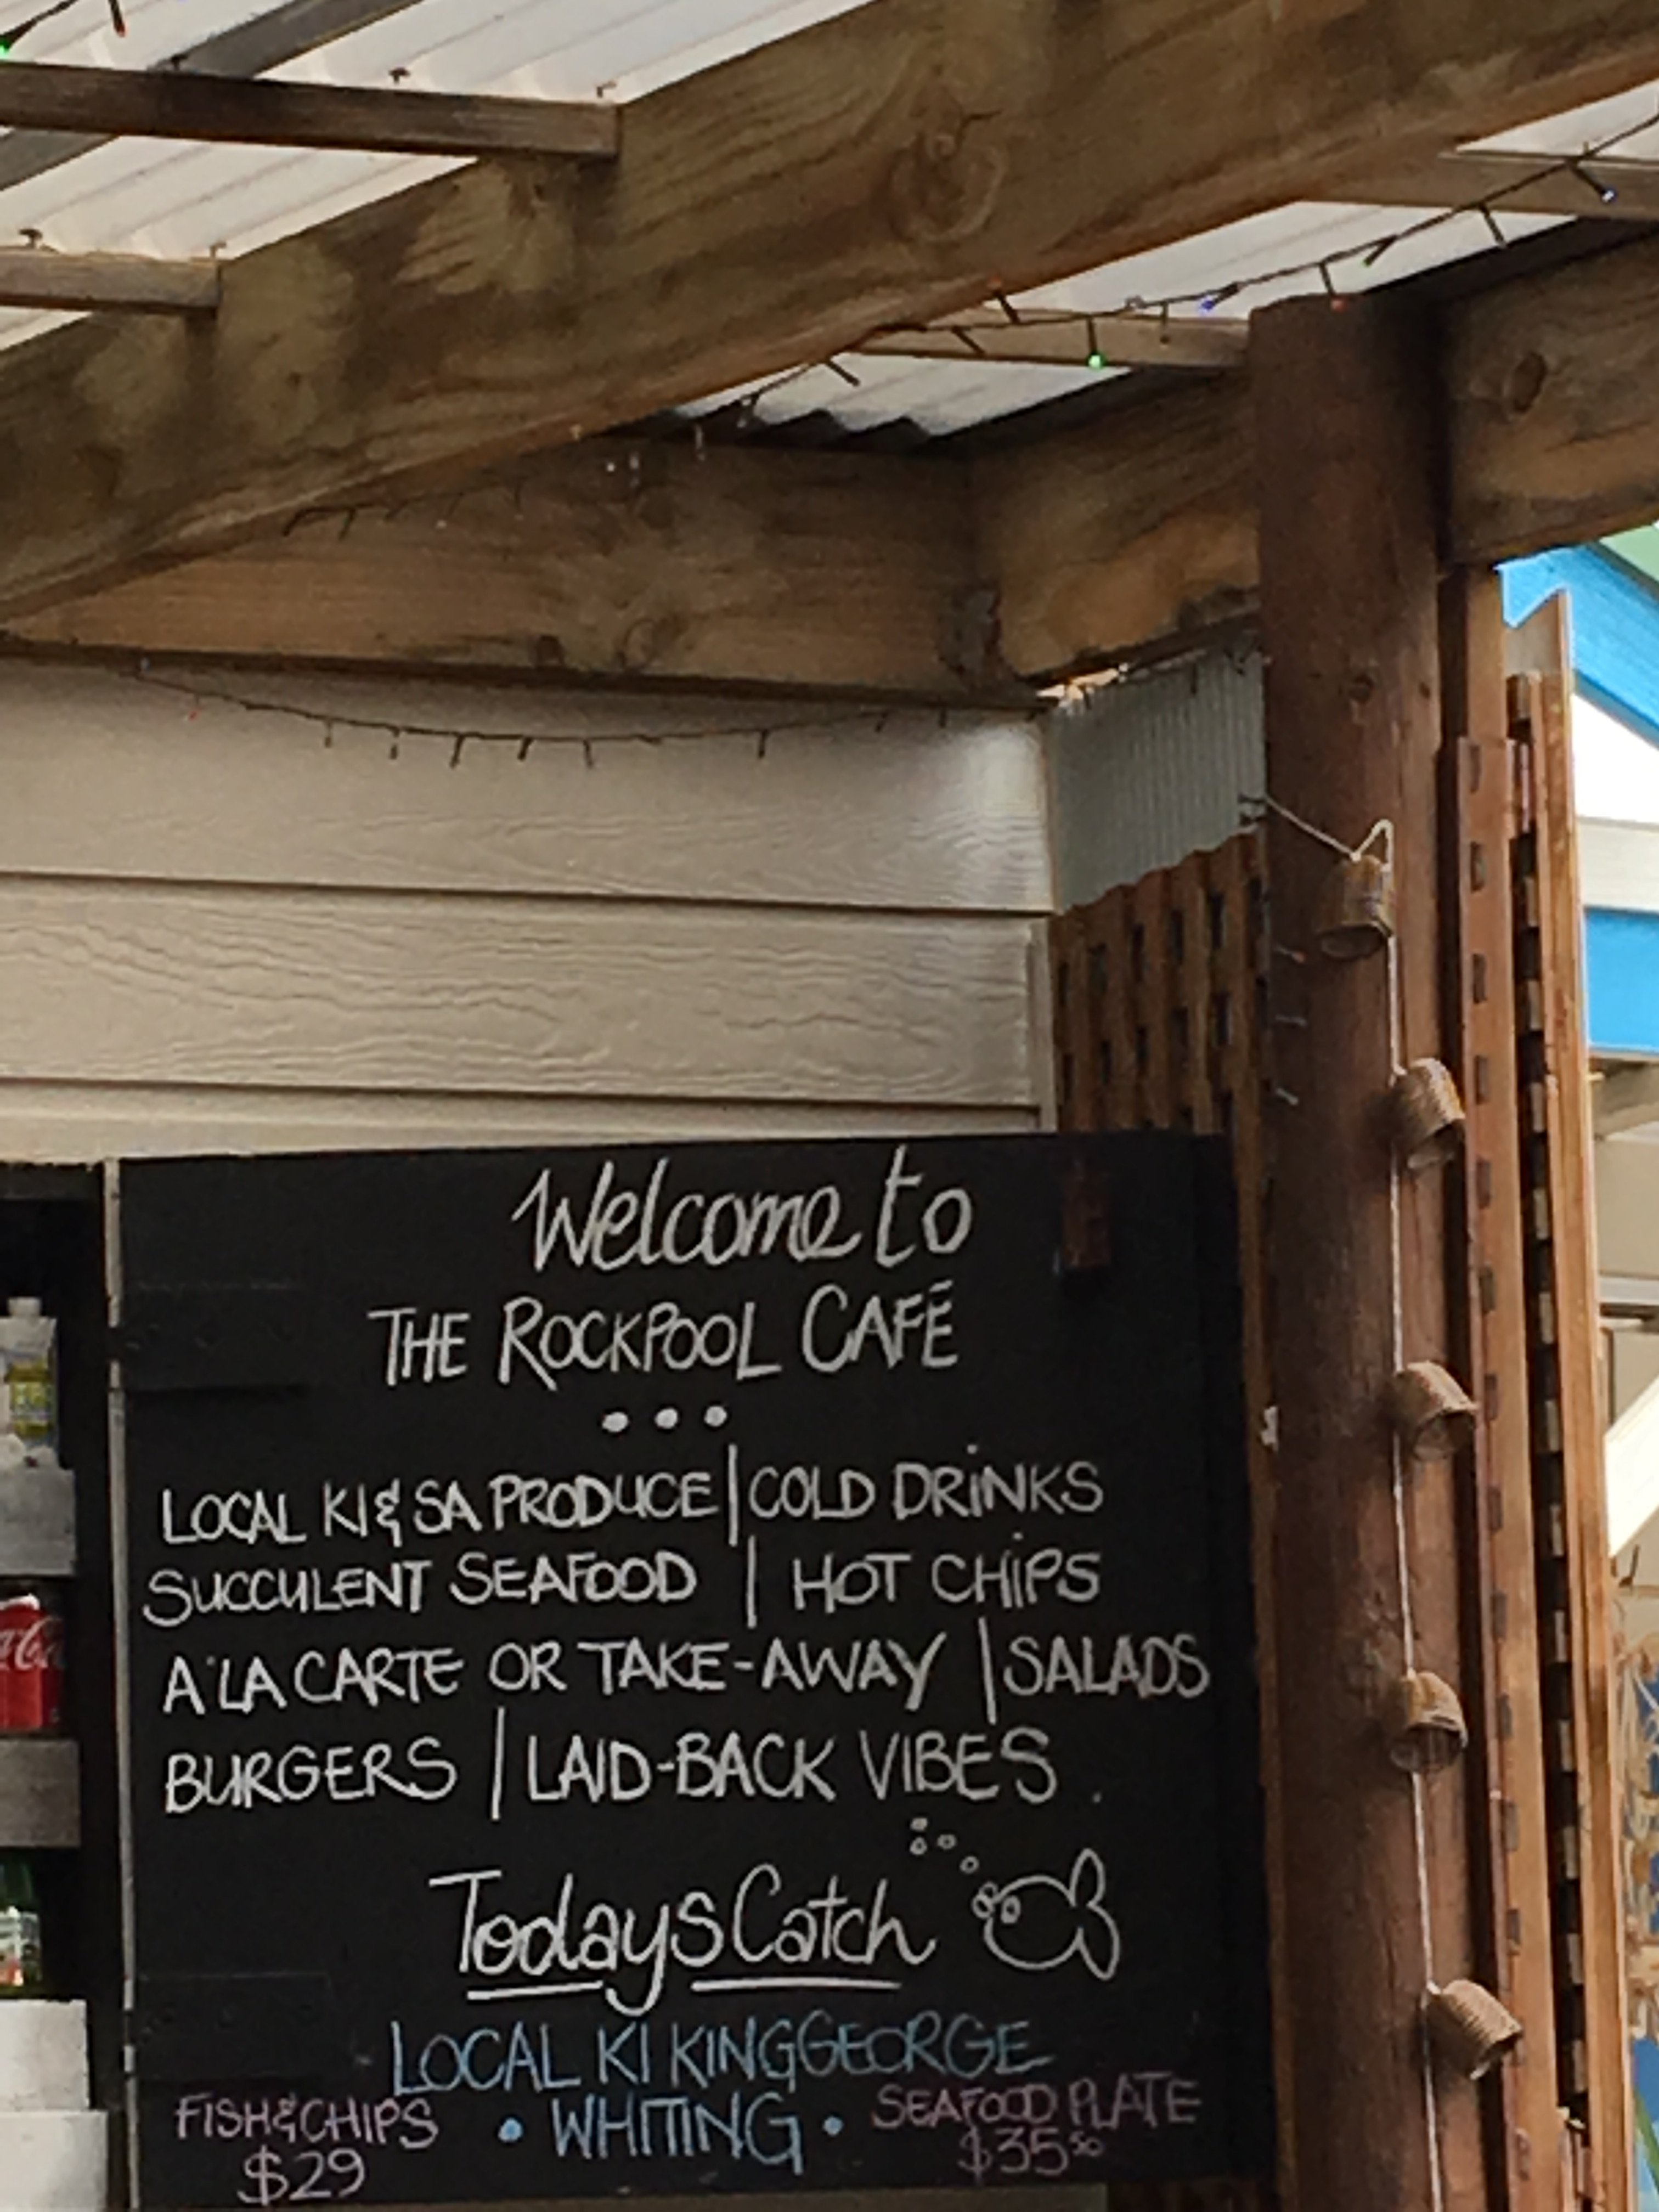 The Rockpool Cafe